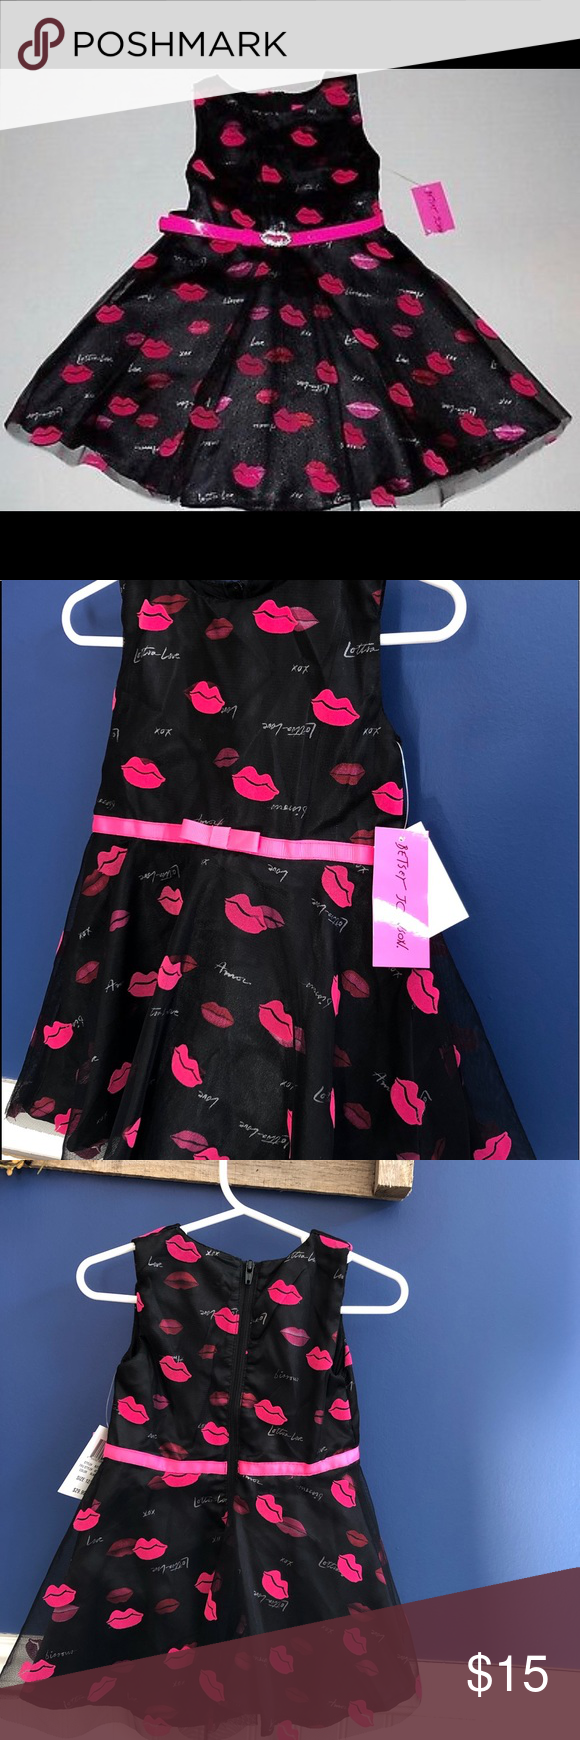 Betsey Johnson Girl black pink bling Lottsa lip Betsey Johnson 💋Girl black .. Words Love, Kisses, Amor, Lottsa Love, etc allover. Betsey Johnson Toddler. Tulle Overlay w/pink velour lip print. Satin like material underneath. Brand new NWT 1st and 2nd pictures are examples of the dress Betsey Johnson Dresses